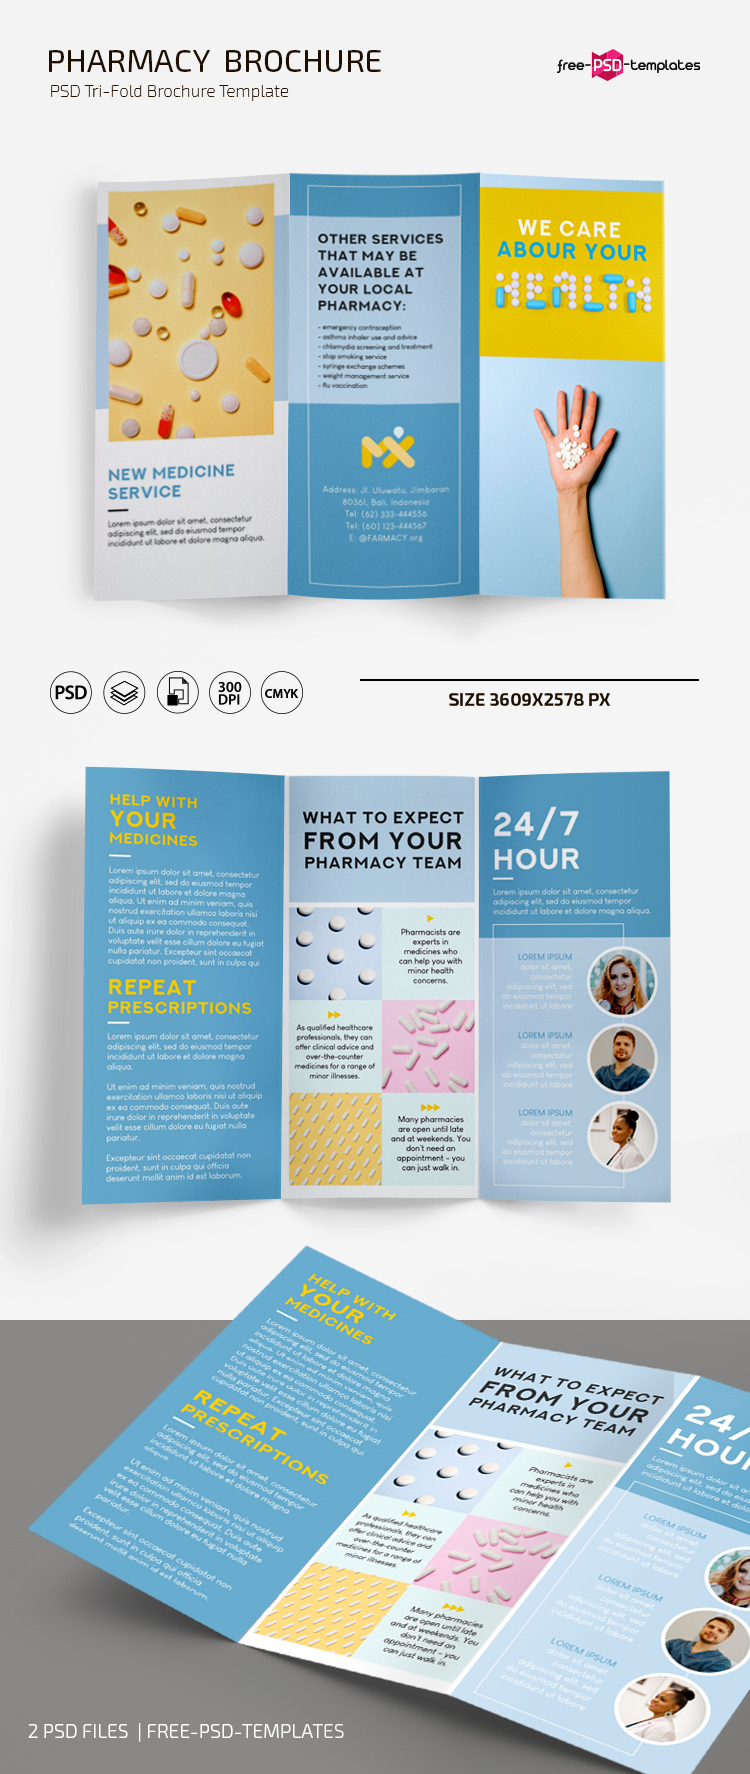 Free Pharmacy Brochure Template in PSD + AI  Free PSD Templates With Pharmacy Brochure Template Free